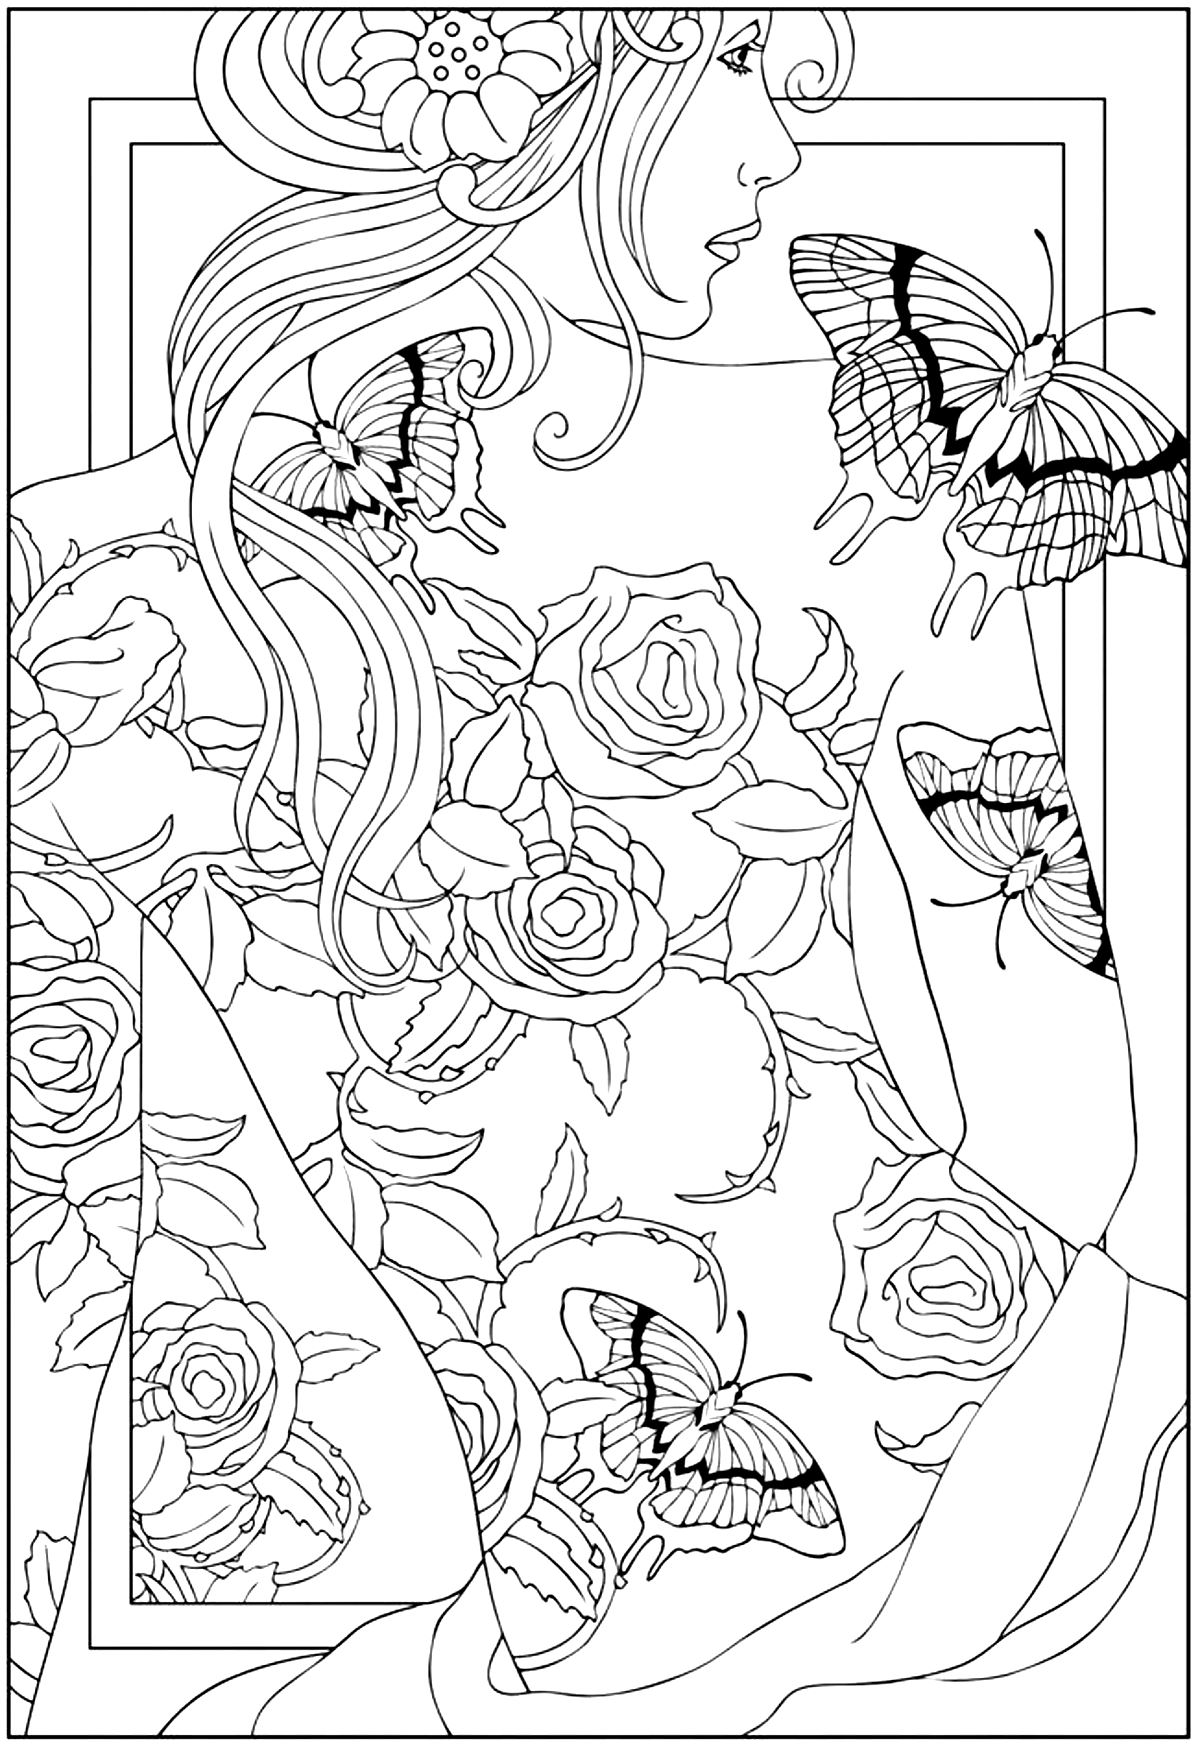 Coloring pictures for adults - Coloring Adult Back Tattooed Woman Free To Print